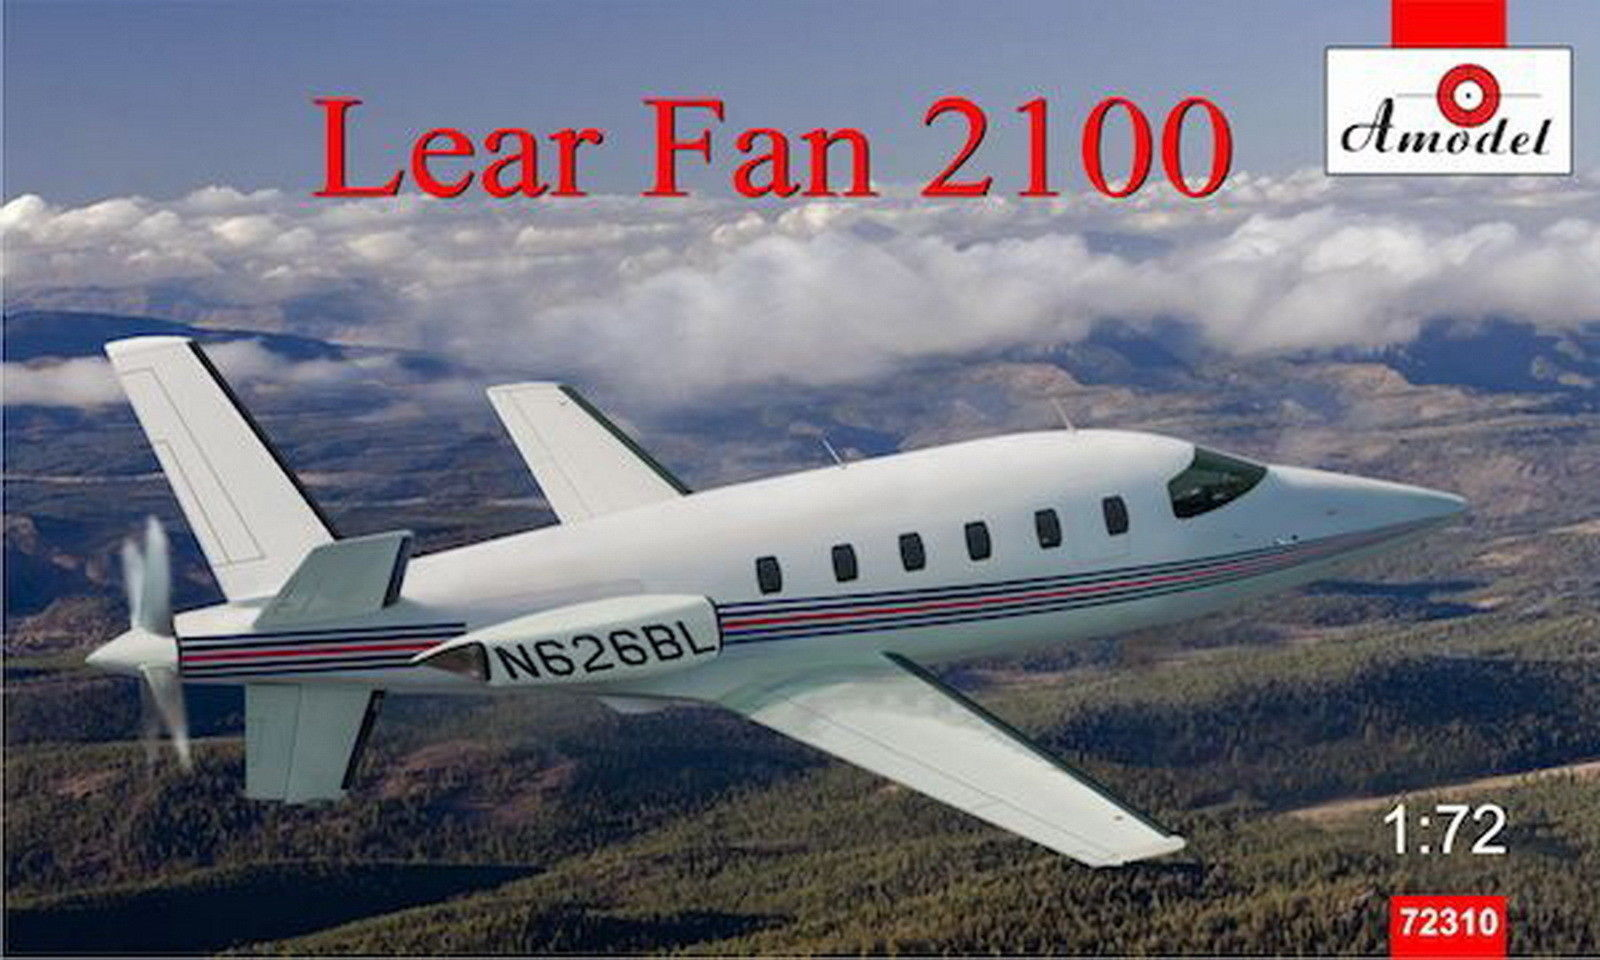 Amodel 1/72 LearAvia Lear Fan 2100, prototyp business jetu